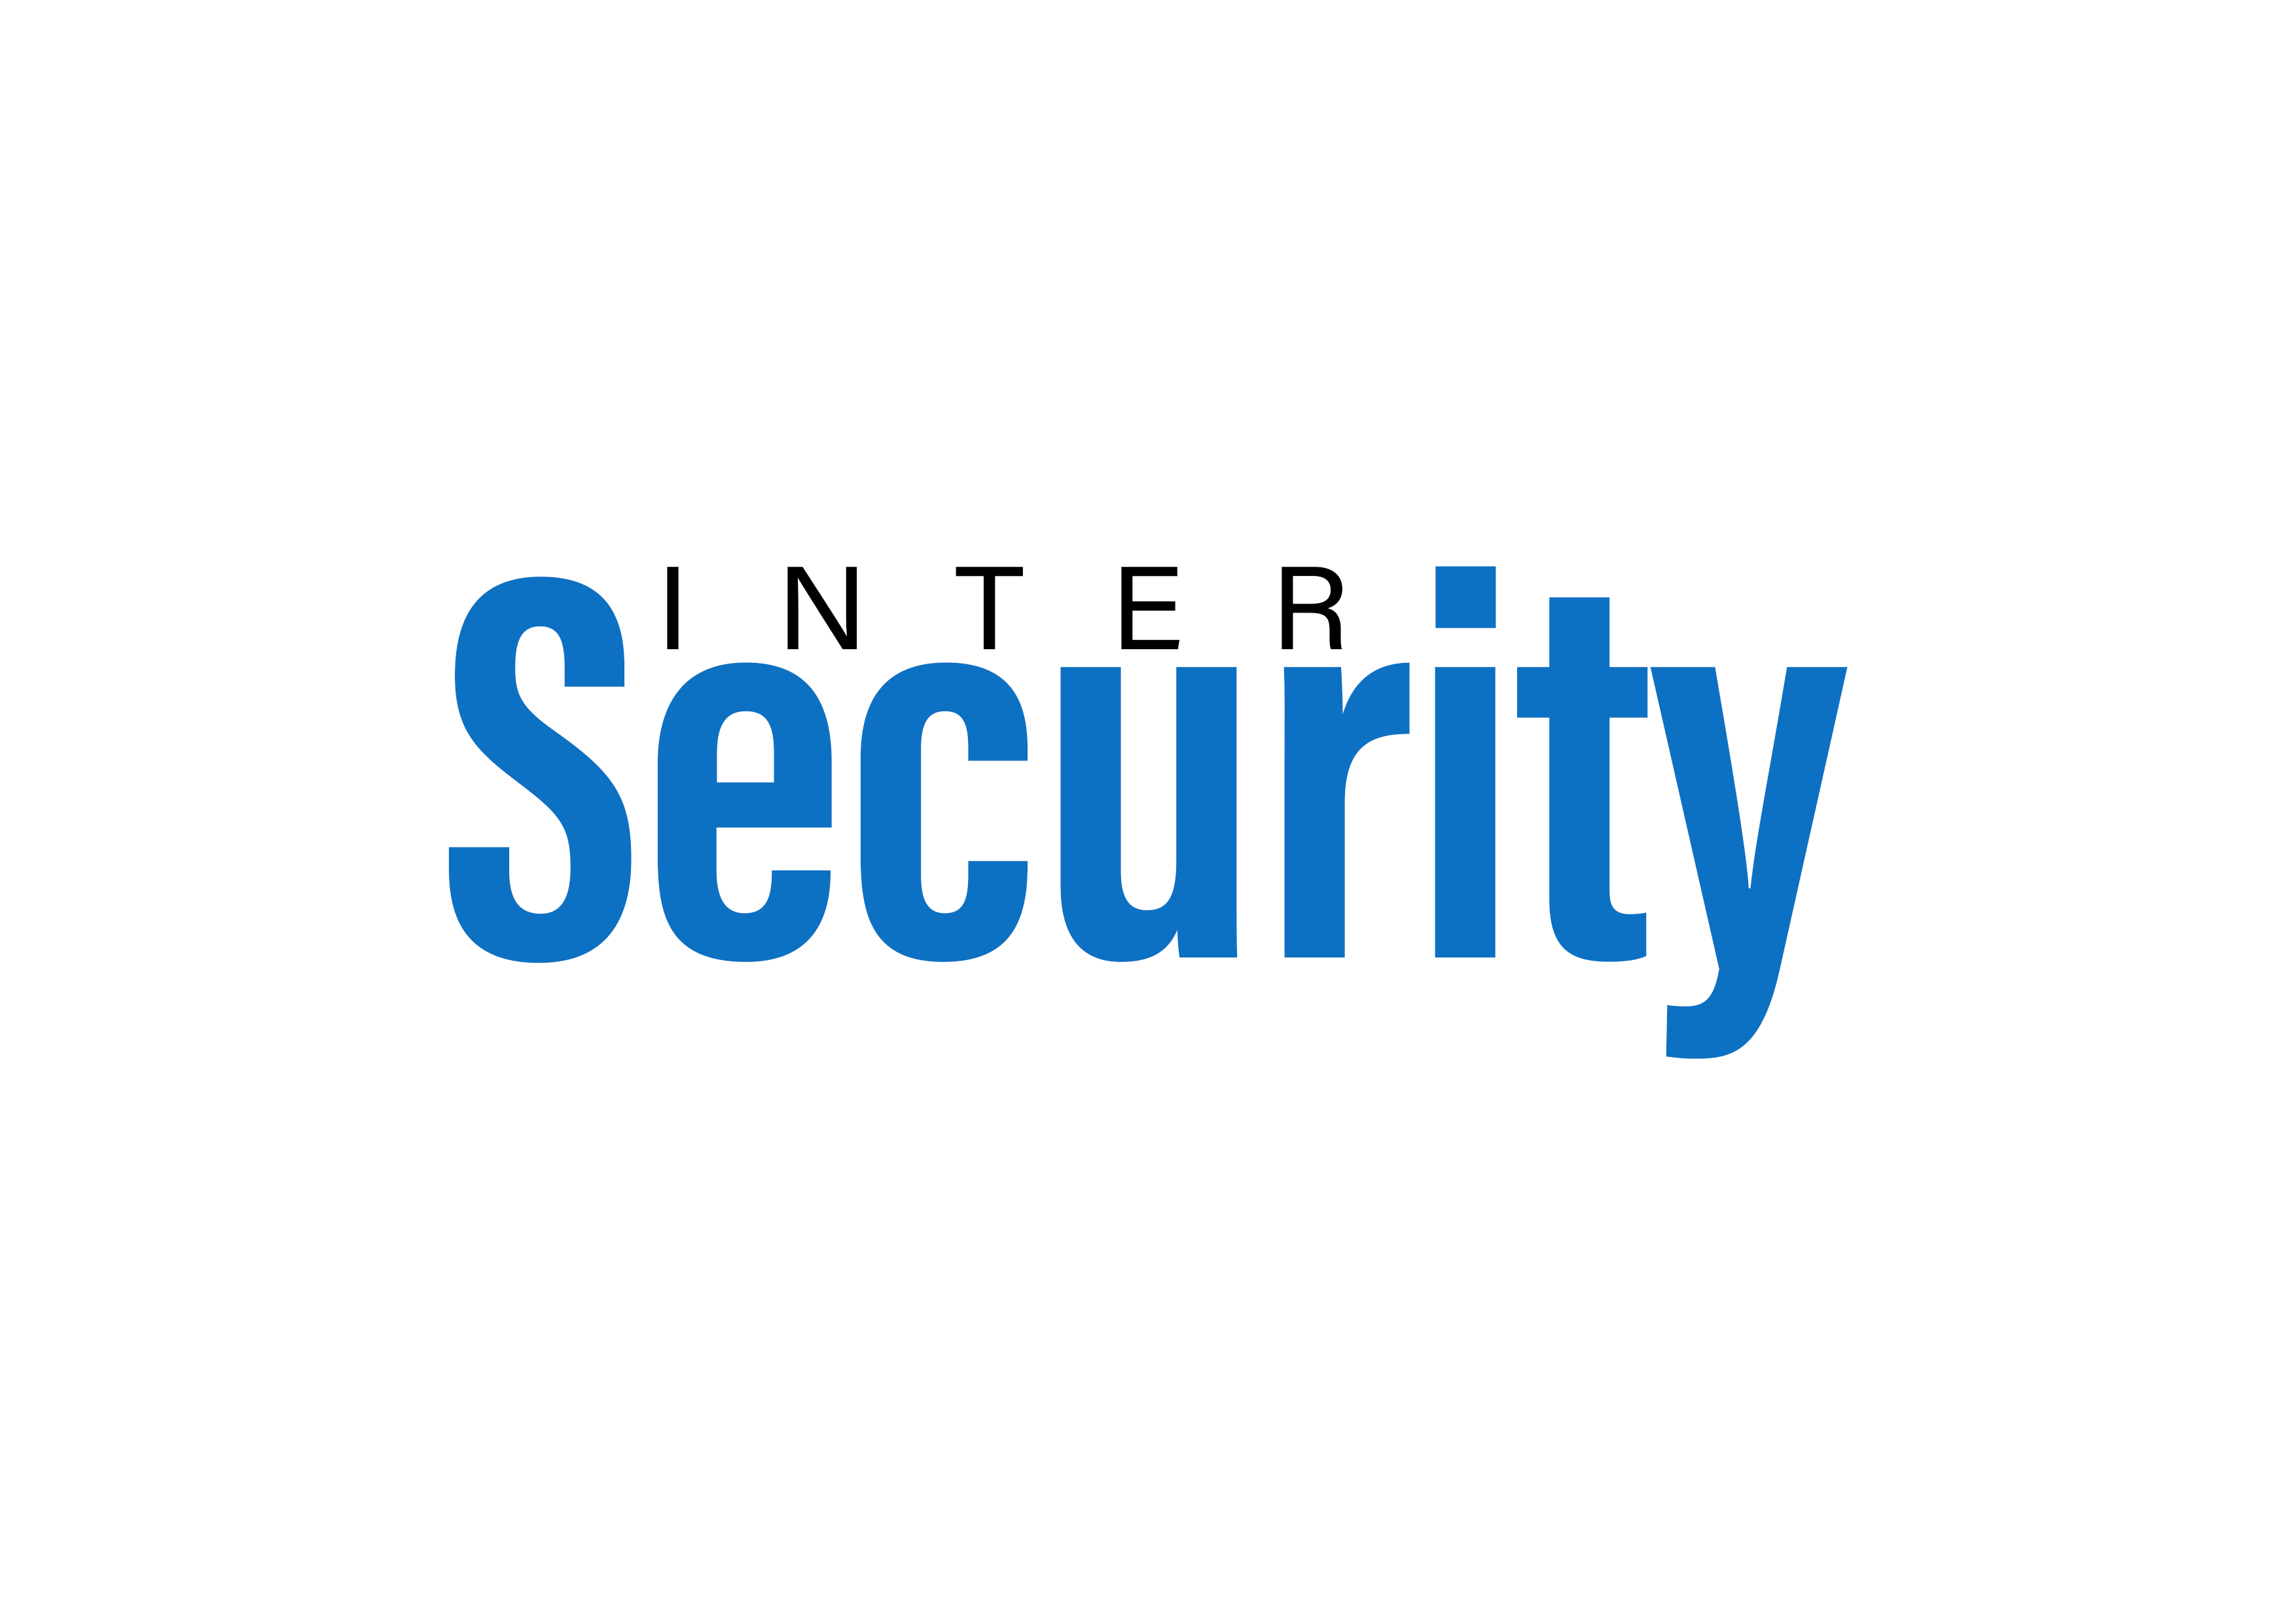 Inter Security